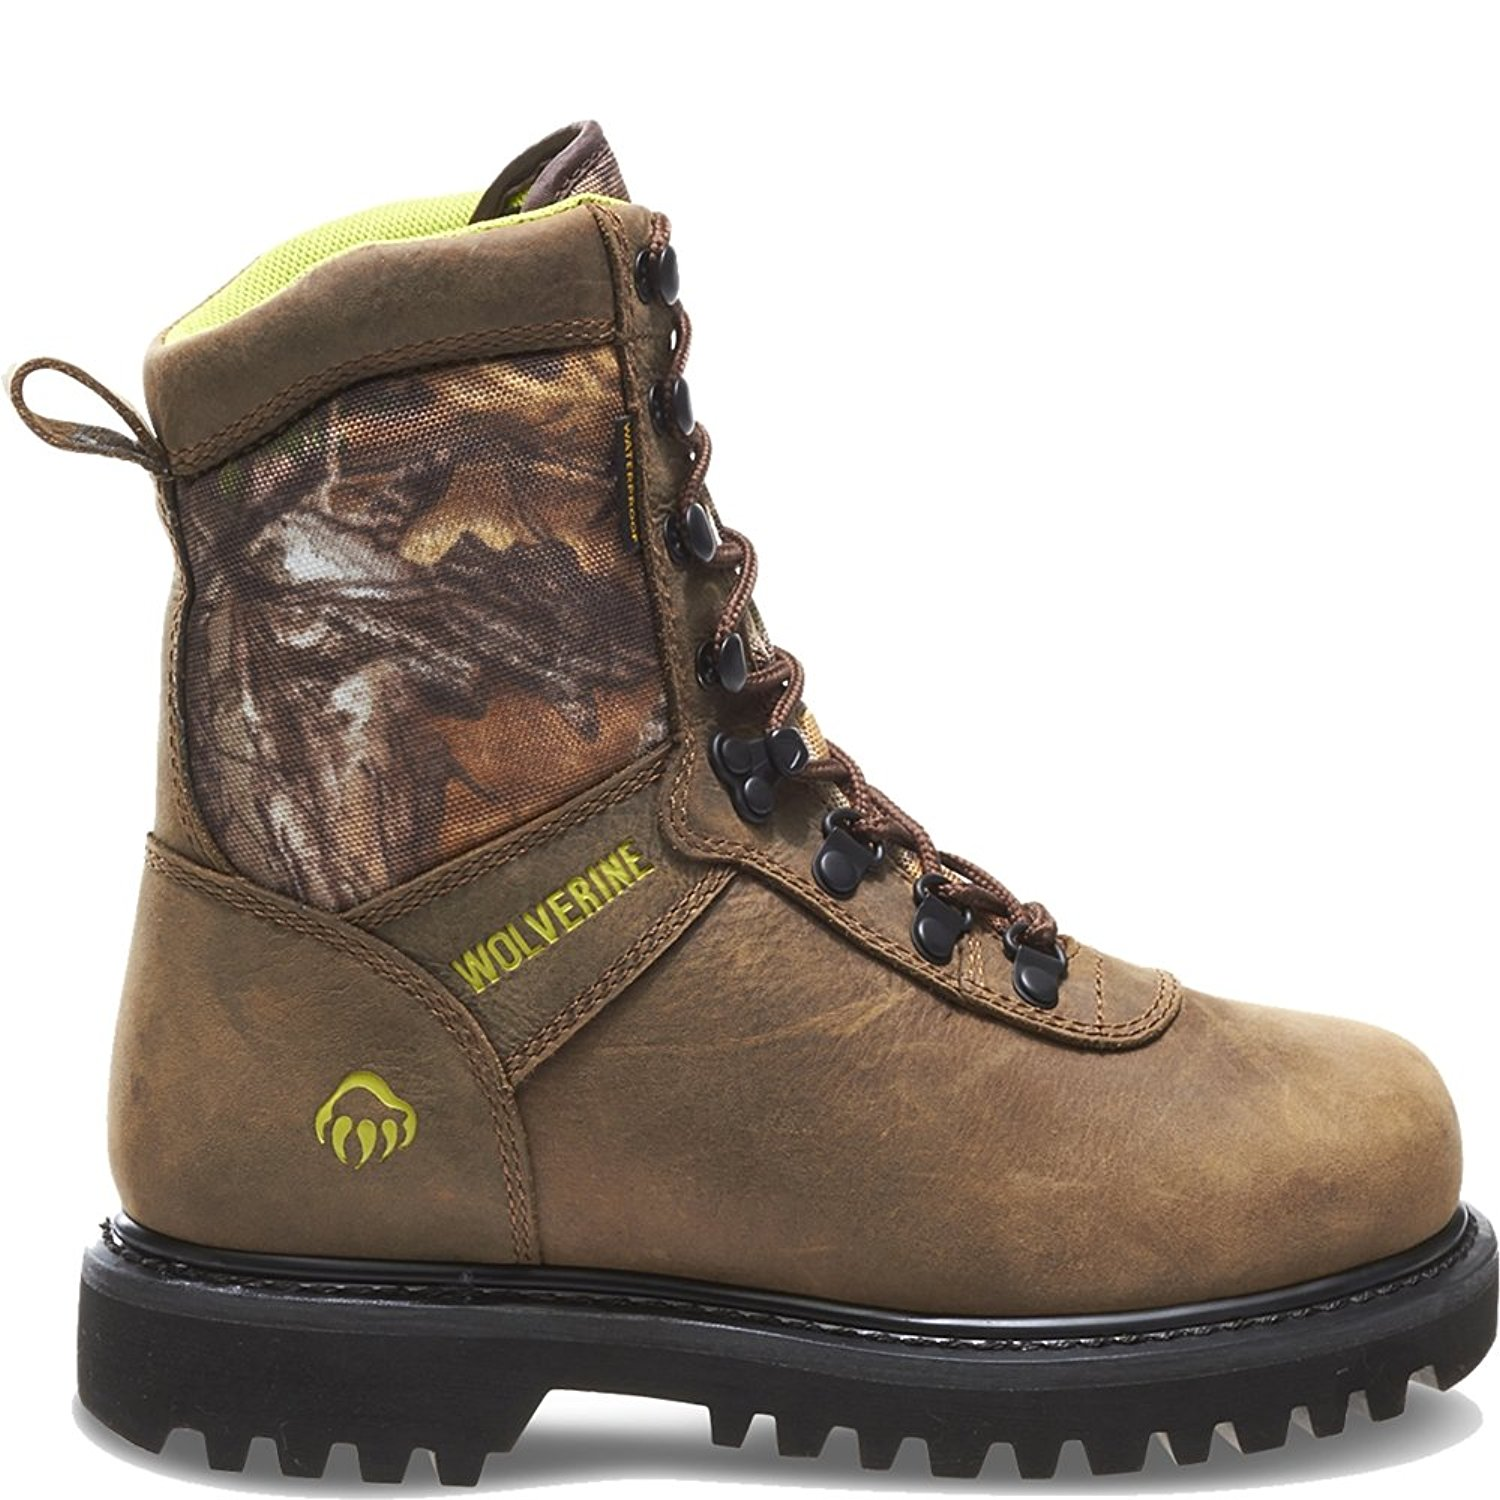 Wolverine Men's Big Horn Plus Boot